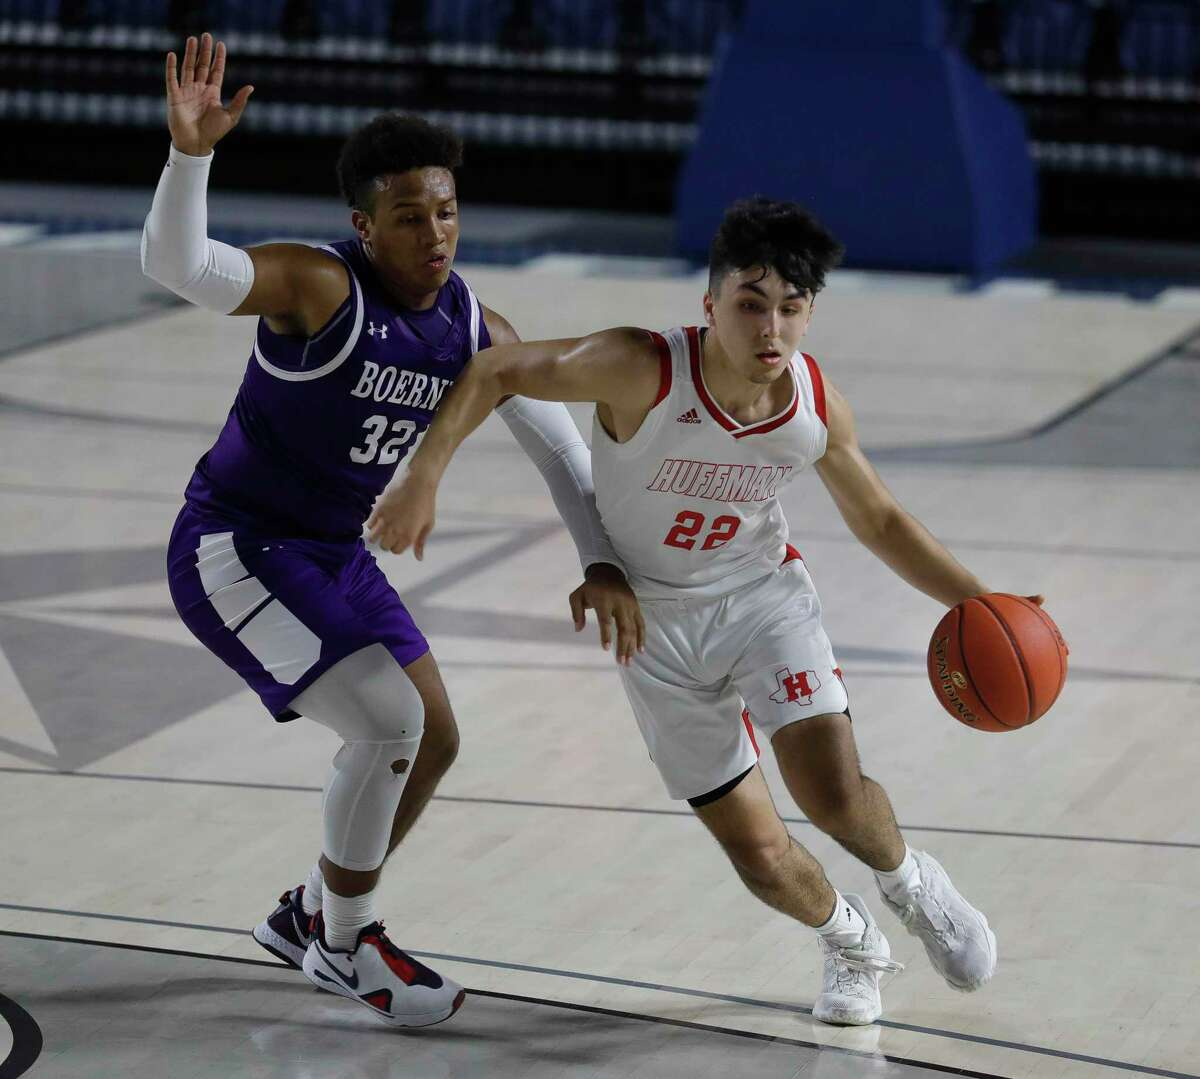 Huffman shooting guard Jesse Viramontez (22) drives the ball agaisnt Boerne guard Rashawn Galloway (32) during the first quarter of a Region III-4A state semifinal game at Delmar Fieldhouse, Tuesday, March 9, 2021, in Houston.